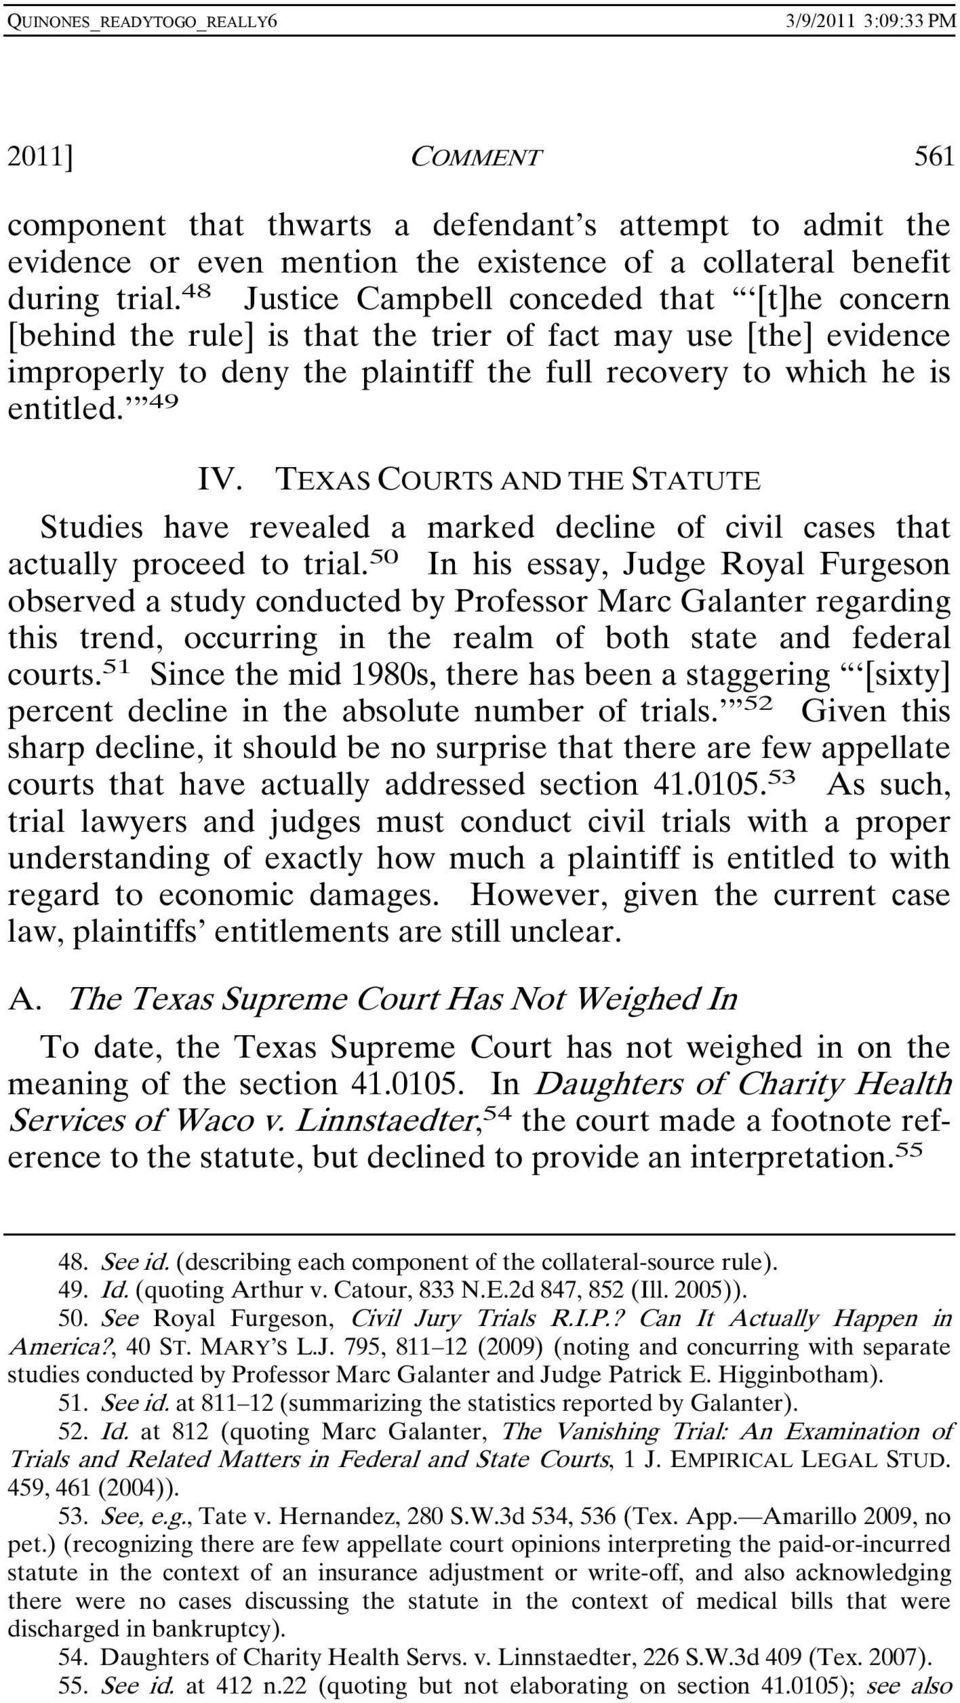 TEXAS COURTS AND THE STATUTE Studies have revealed a marked decline of civil cases that actually proceed to trial.